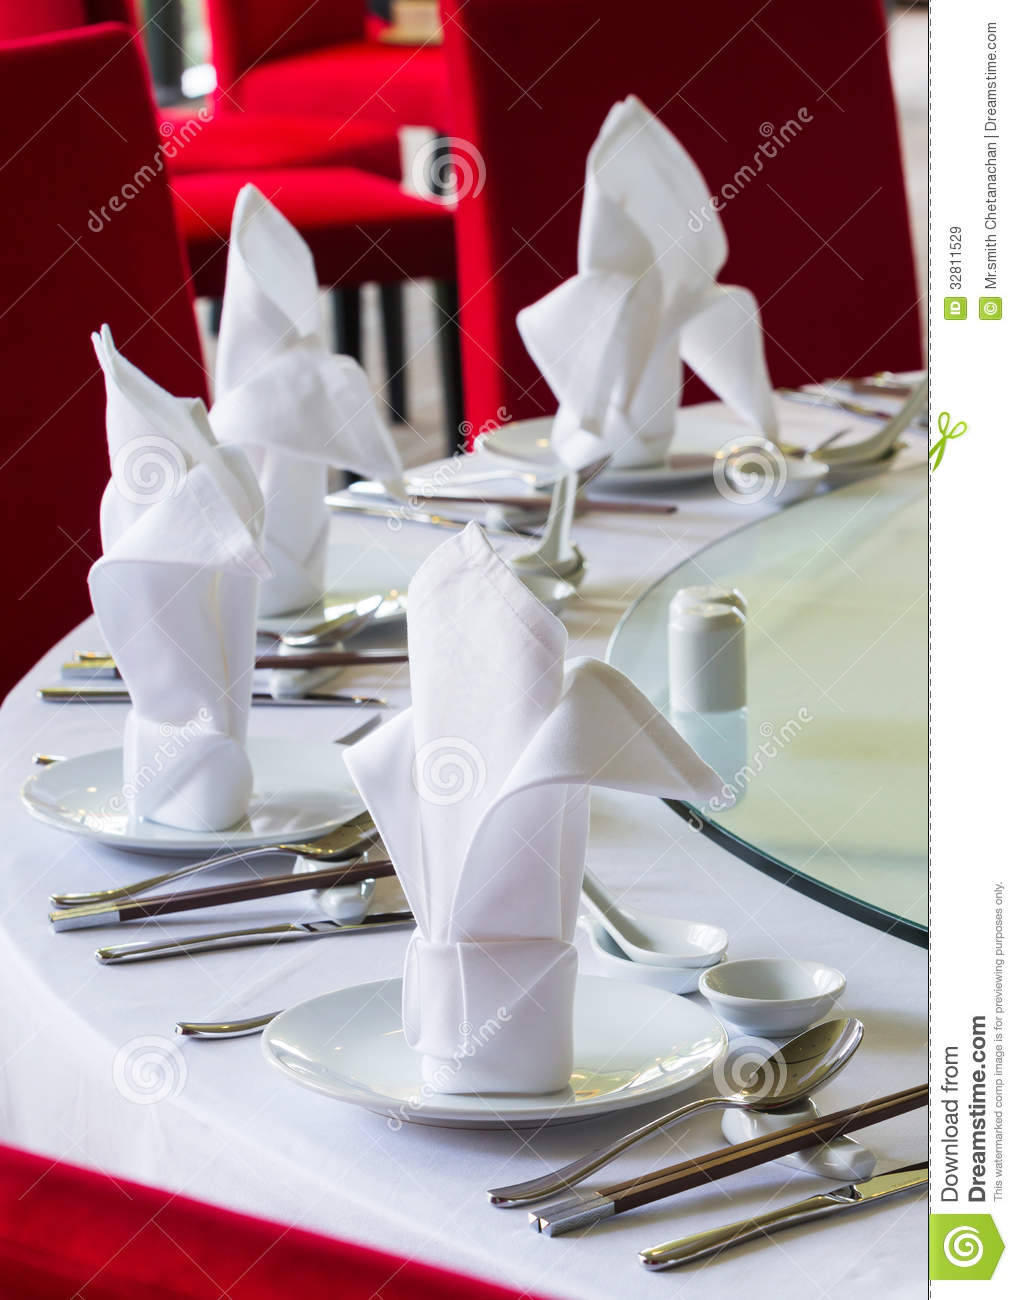 Chinese Dining Table Setup Royalty Free Stock Images  : chinese dining table setup close up white napkin set up 32811529 from www.dreamstime.com size 1018 x 1300 jpeg 125kB